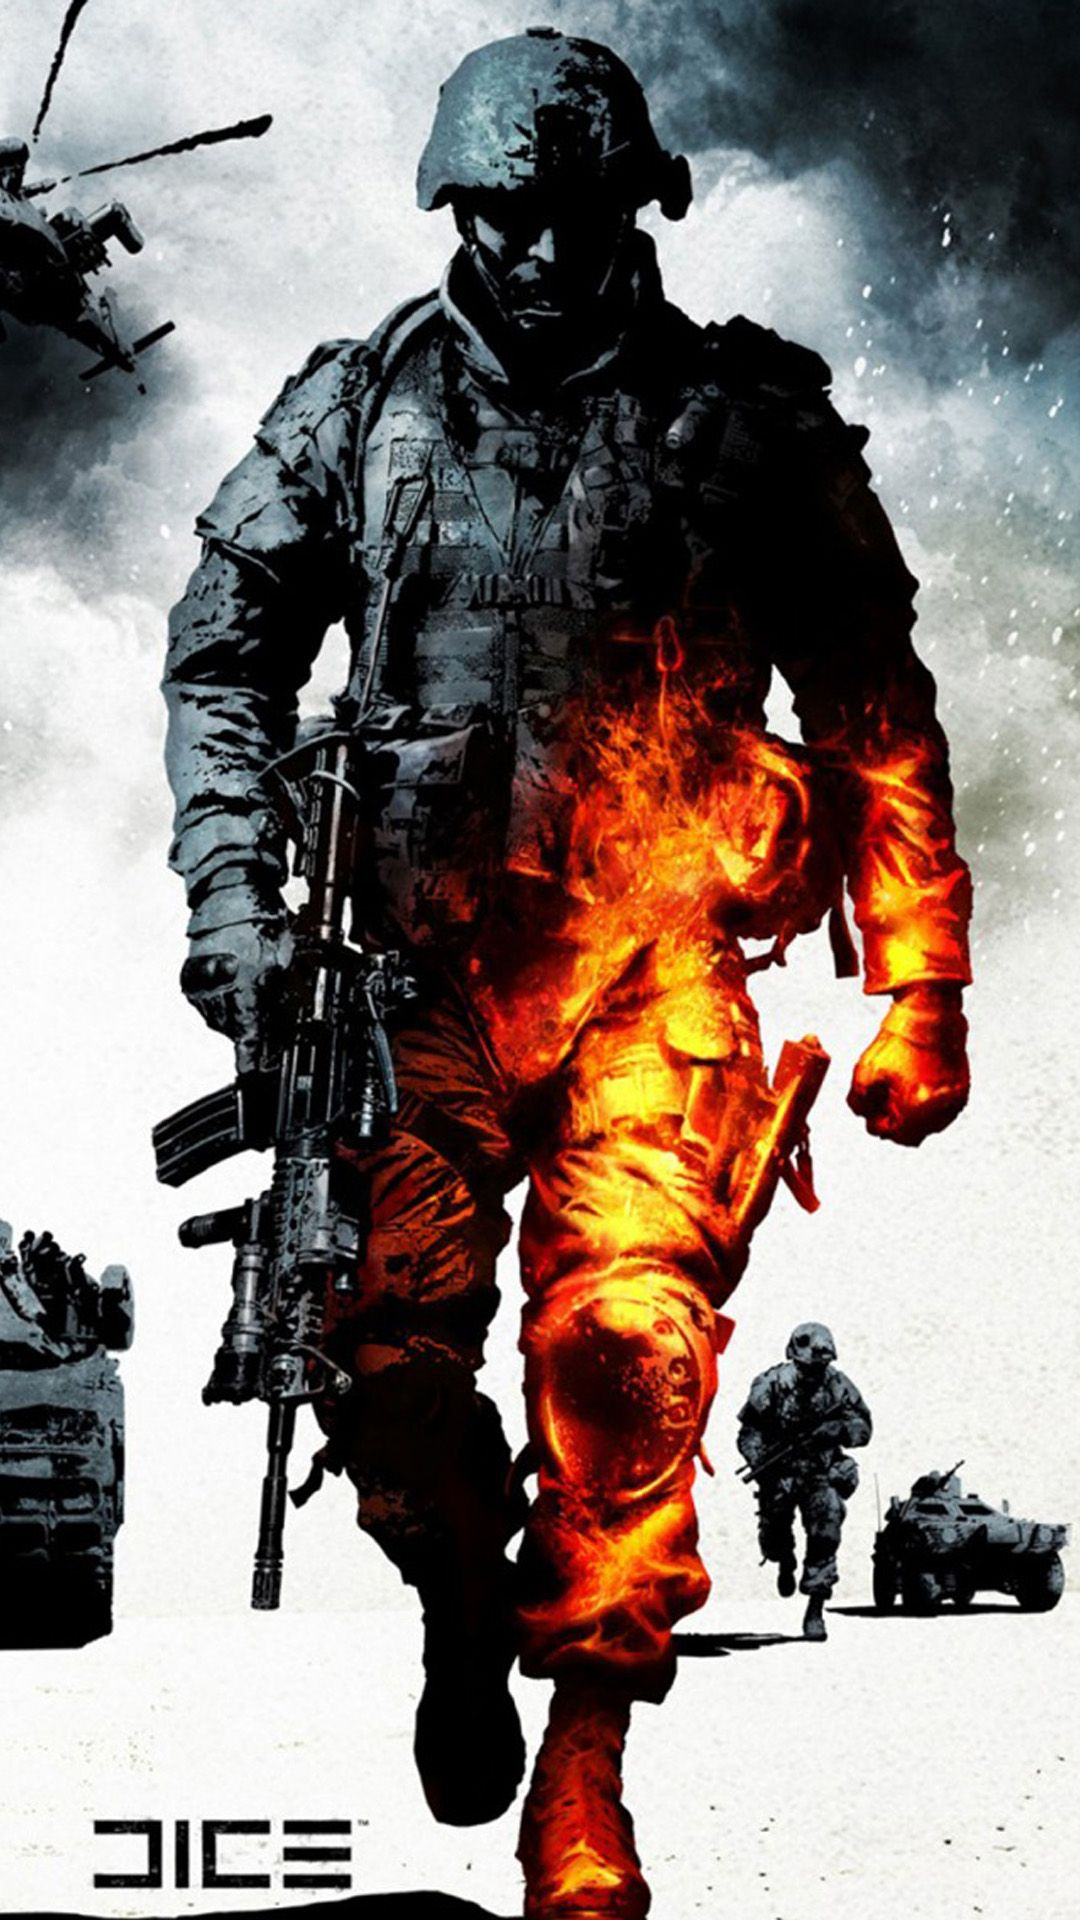 Military Burning Soldier iPhone 6 Wallpaper Download iPhone 1080x1920